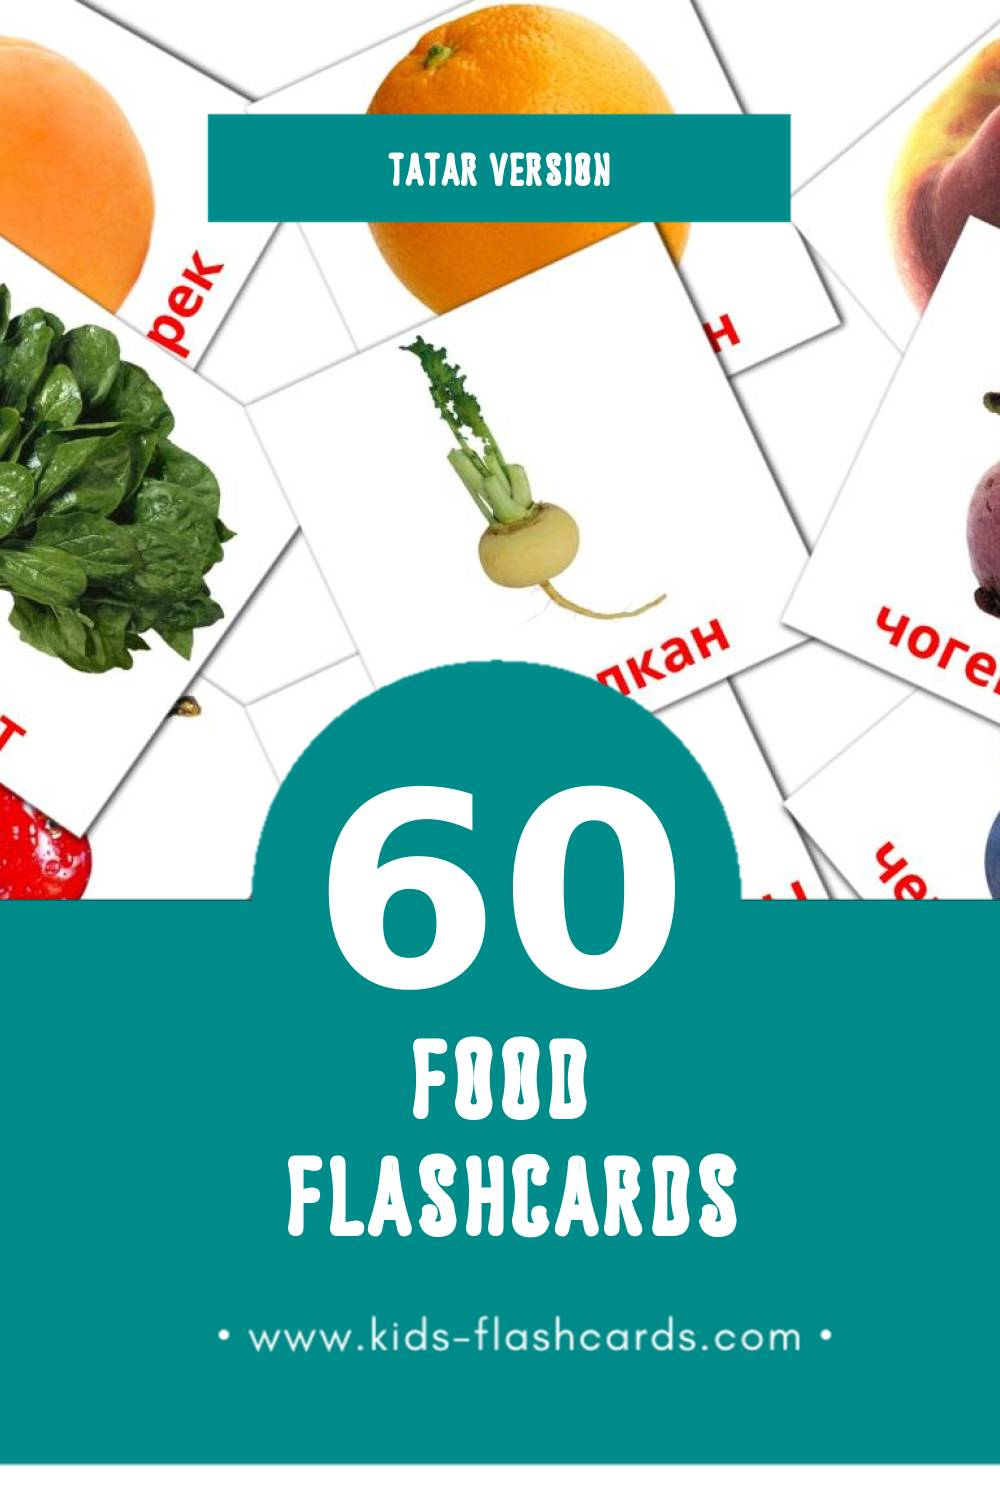 Visual Азык Flashcards for Toddlers (60 cards in Tatar)